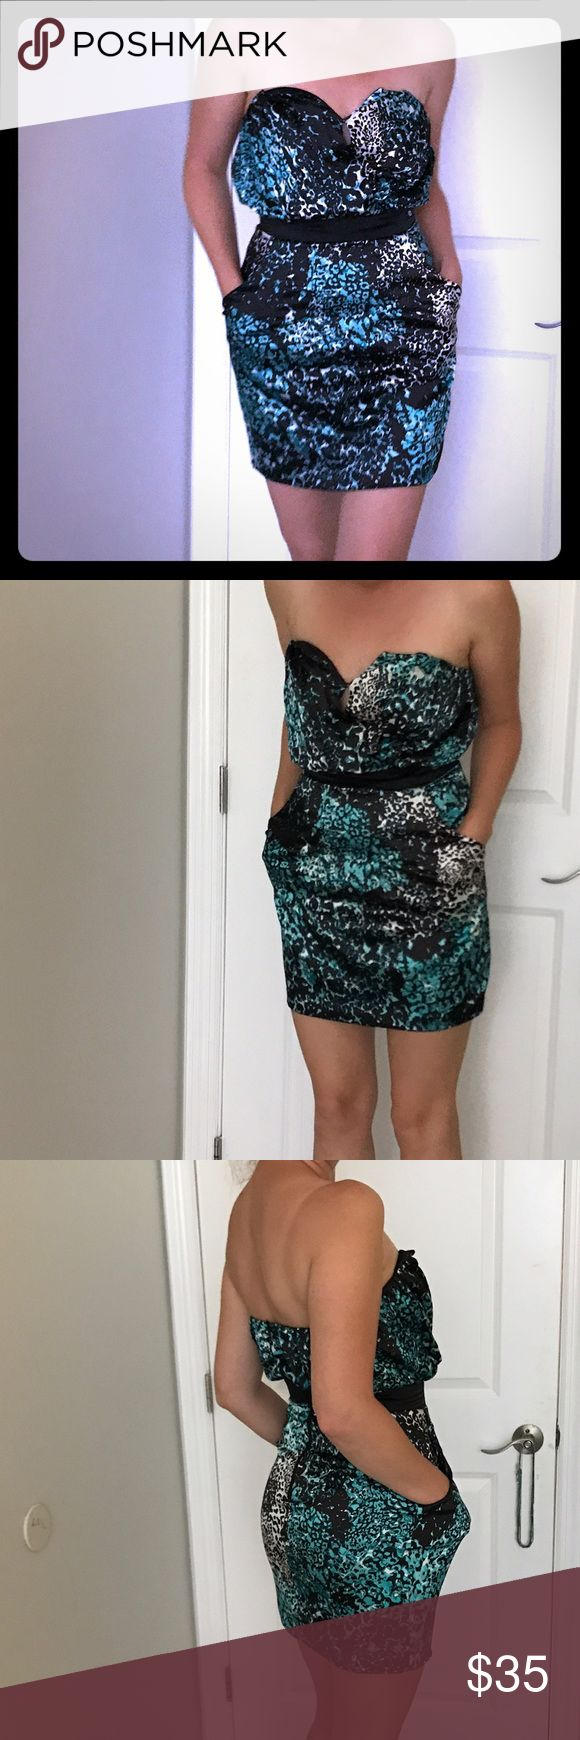 💐Guess dress🌸 leopard print guess dress. Only worn one time brand new condition. Guess Dresses